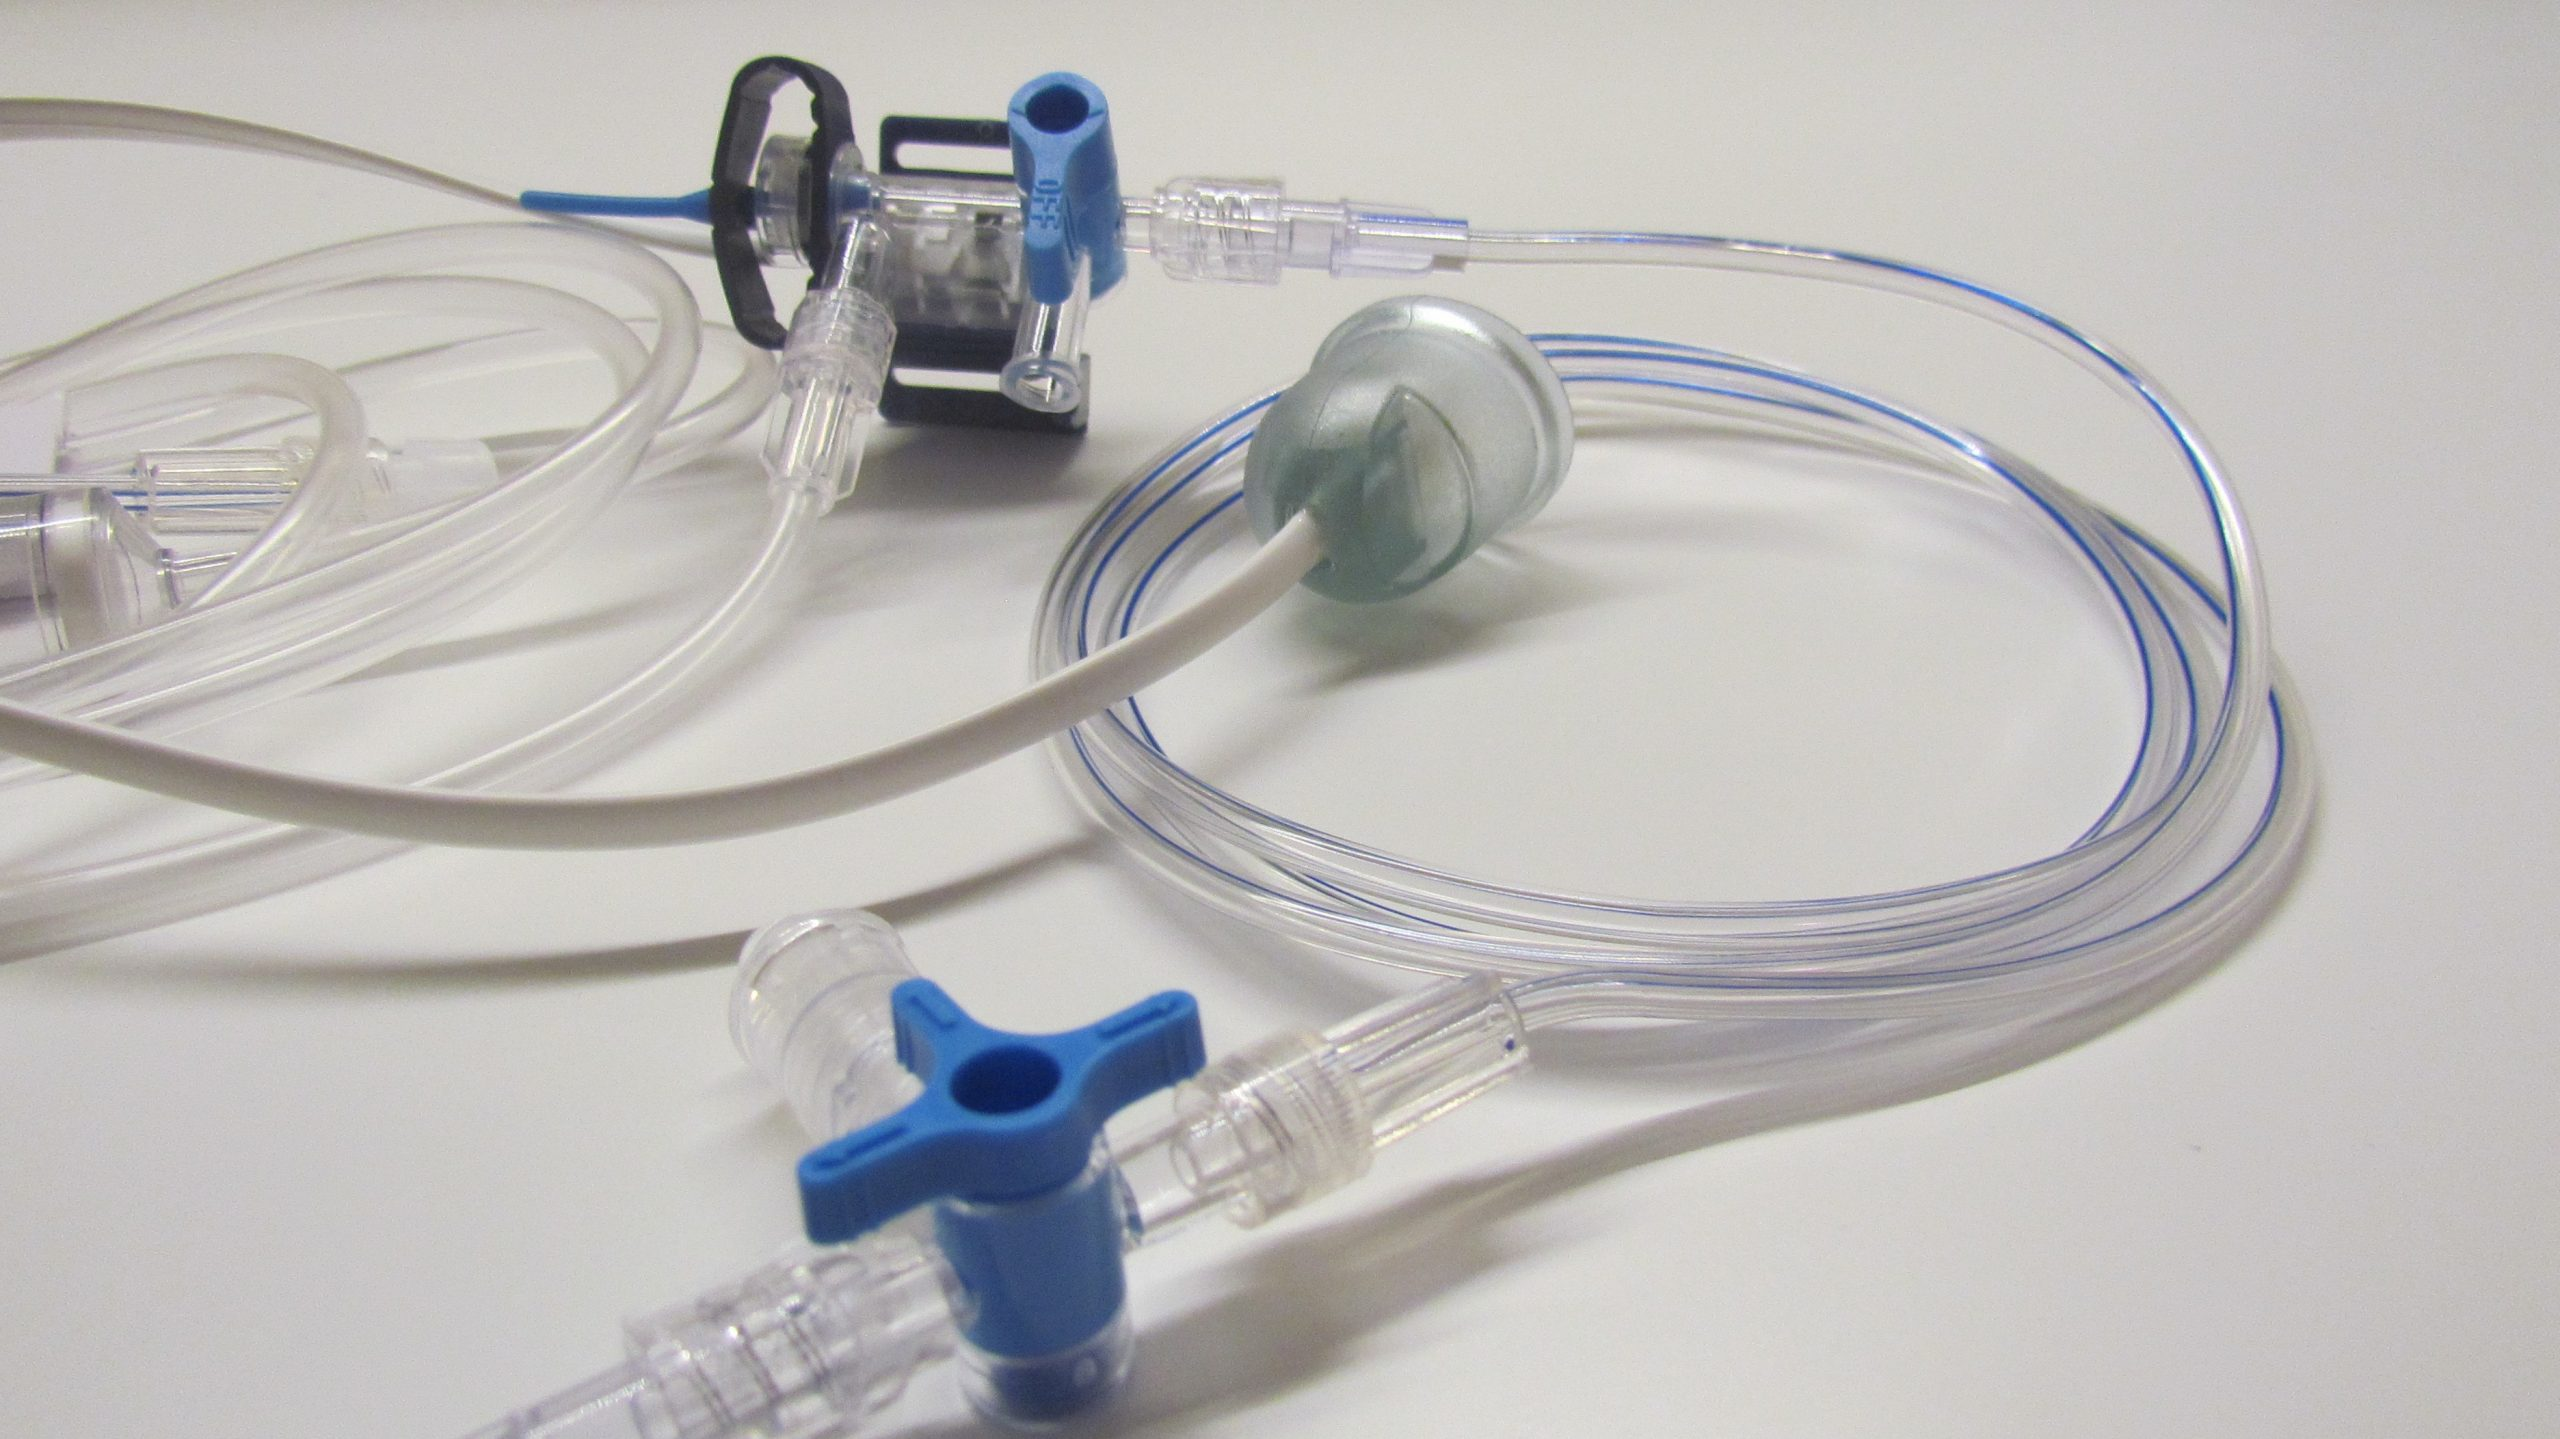 Physiology pressure transducer sets